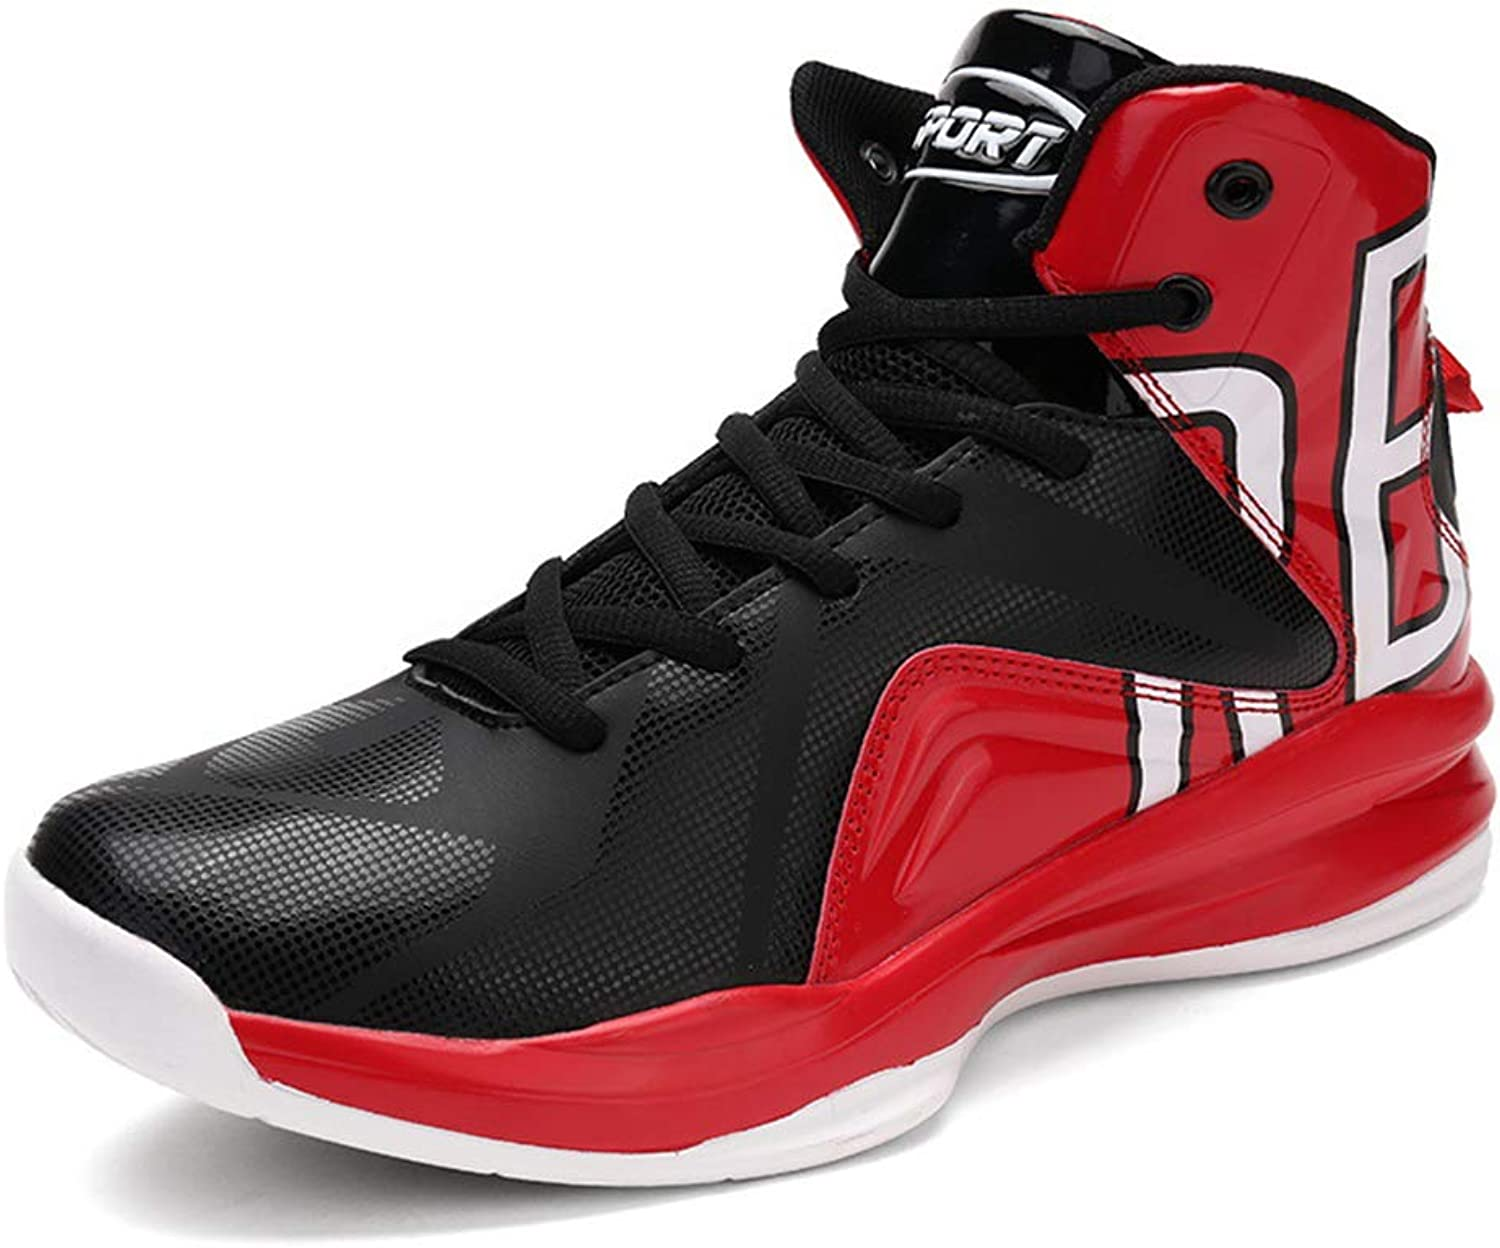 He-yanjing Men's Basketball shoes, Autumn and Winter New Sneakers Men's High-top Shock Absorber Youth Boots Large Size Student Sneakers,b,44